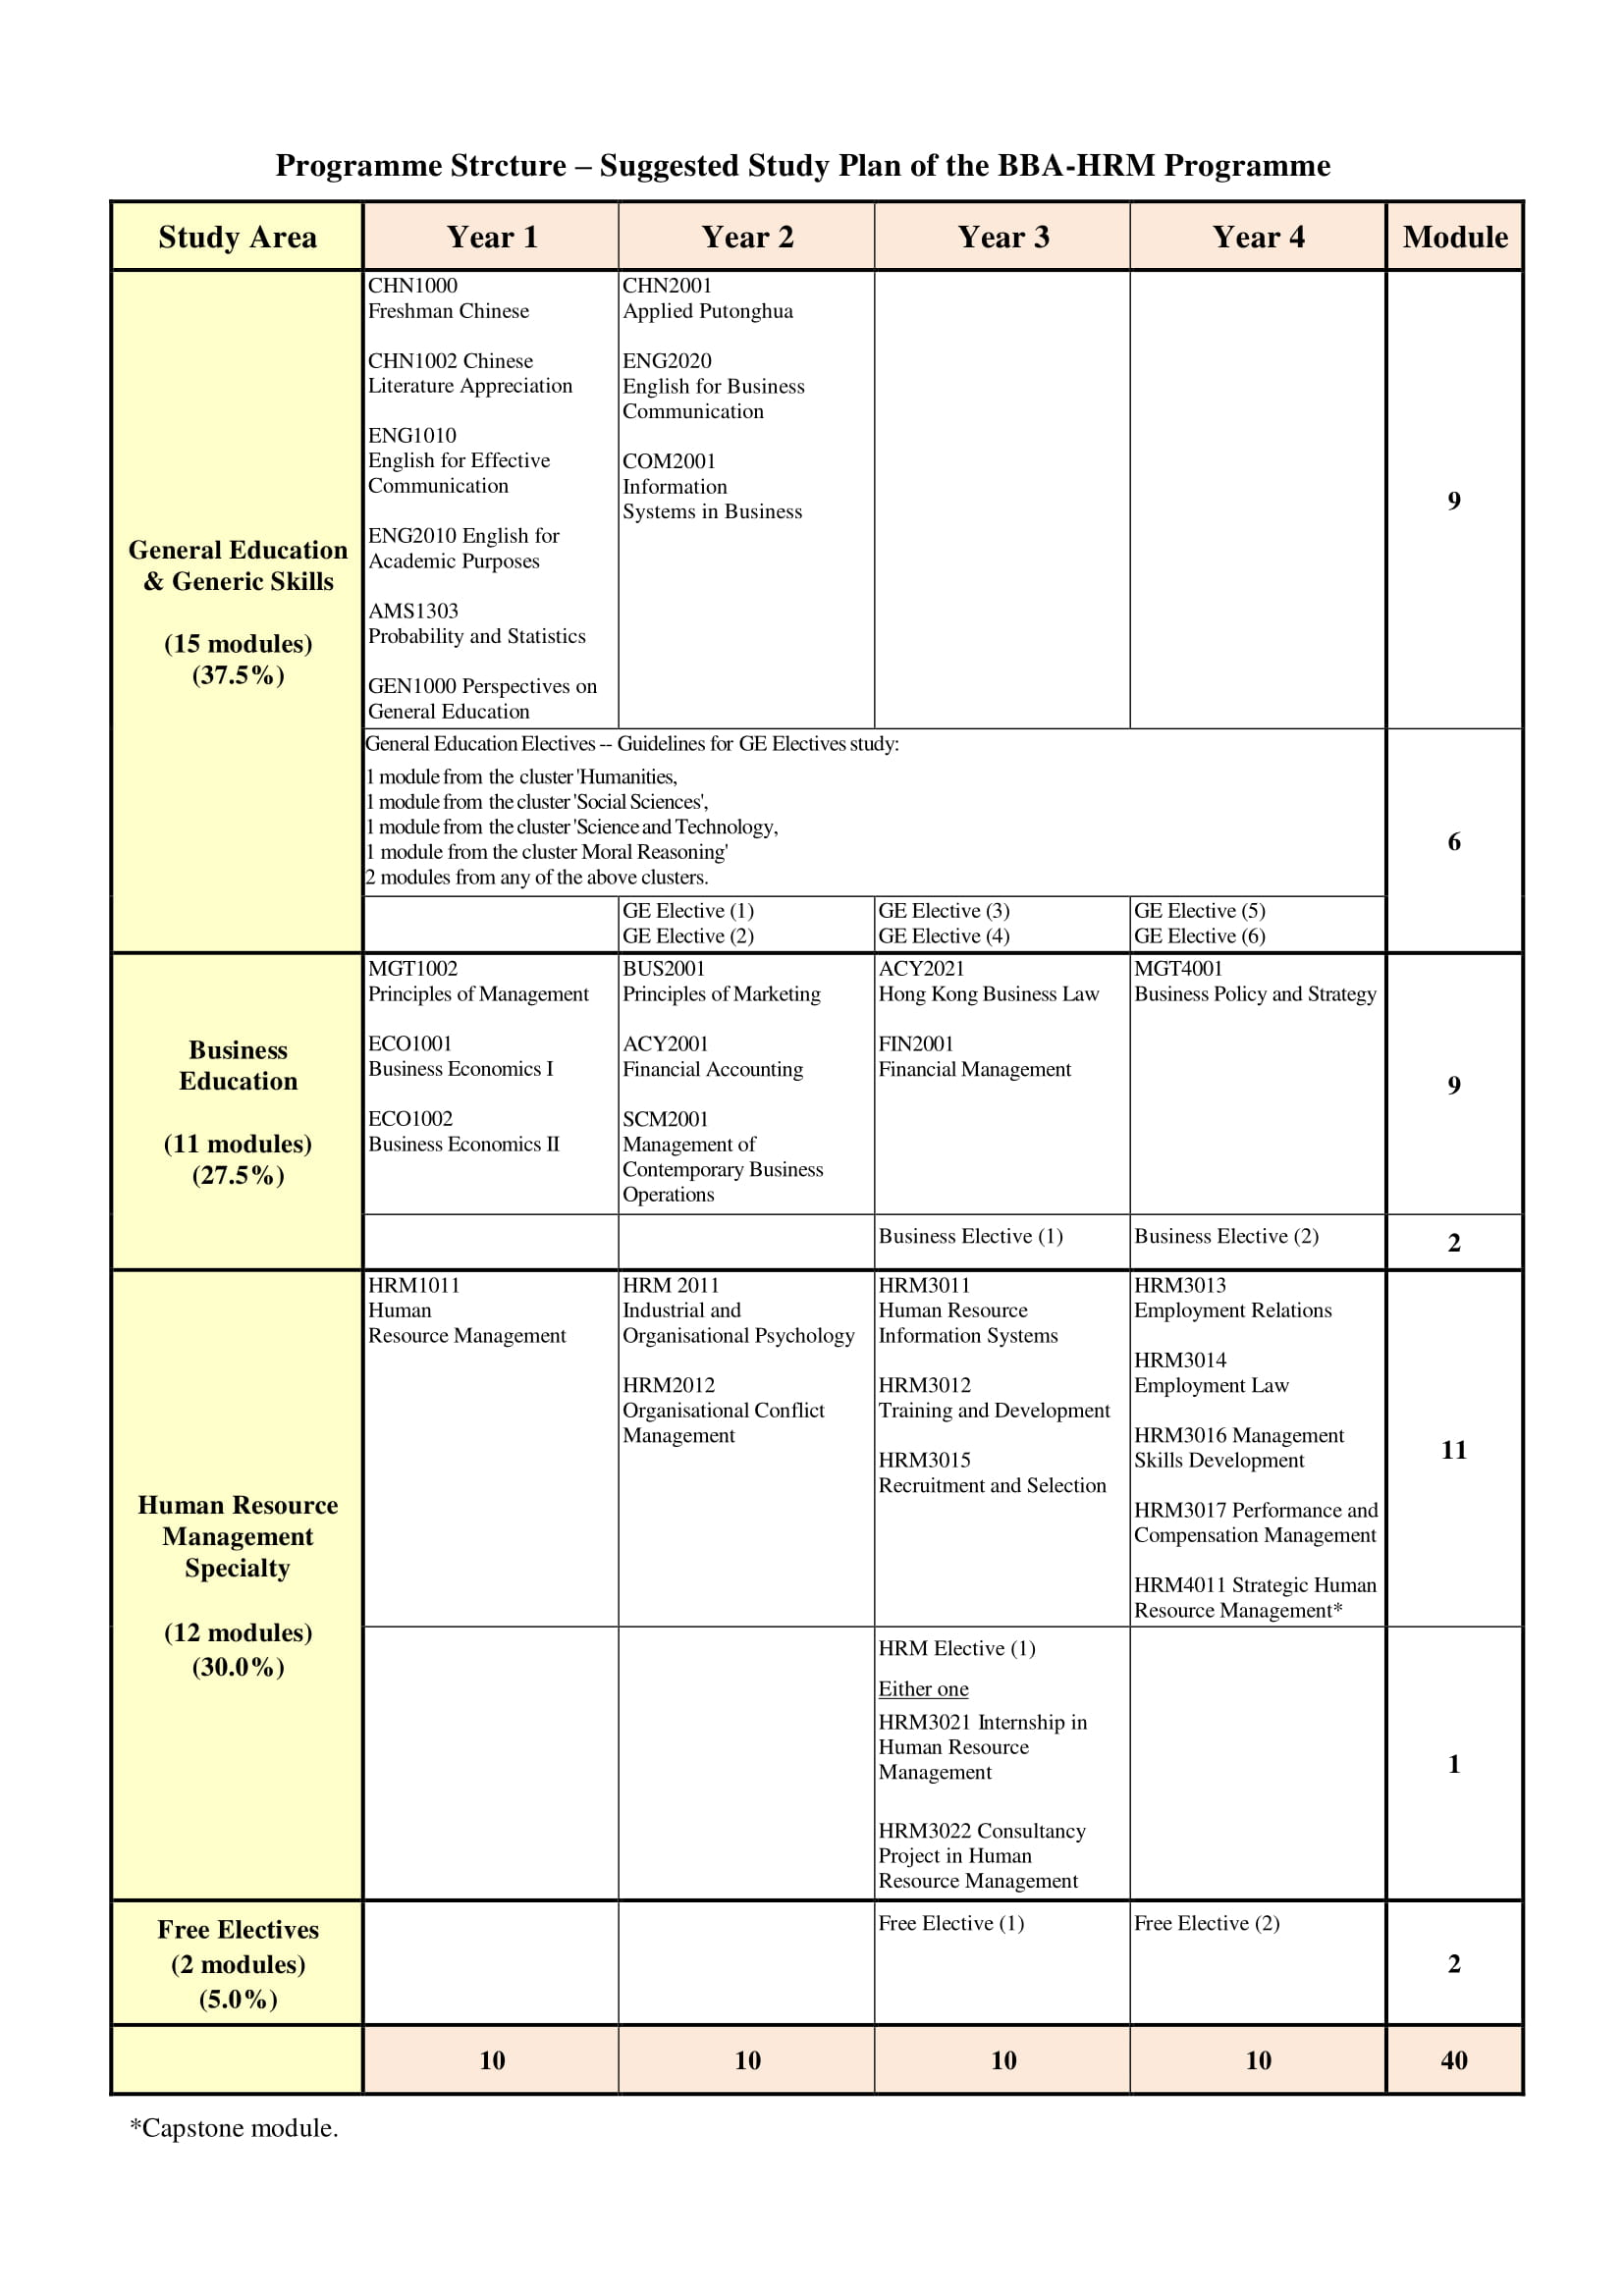 Programme Strcture_BBA-HRM